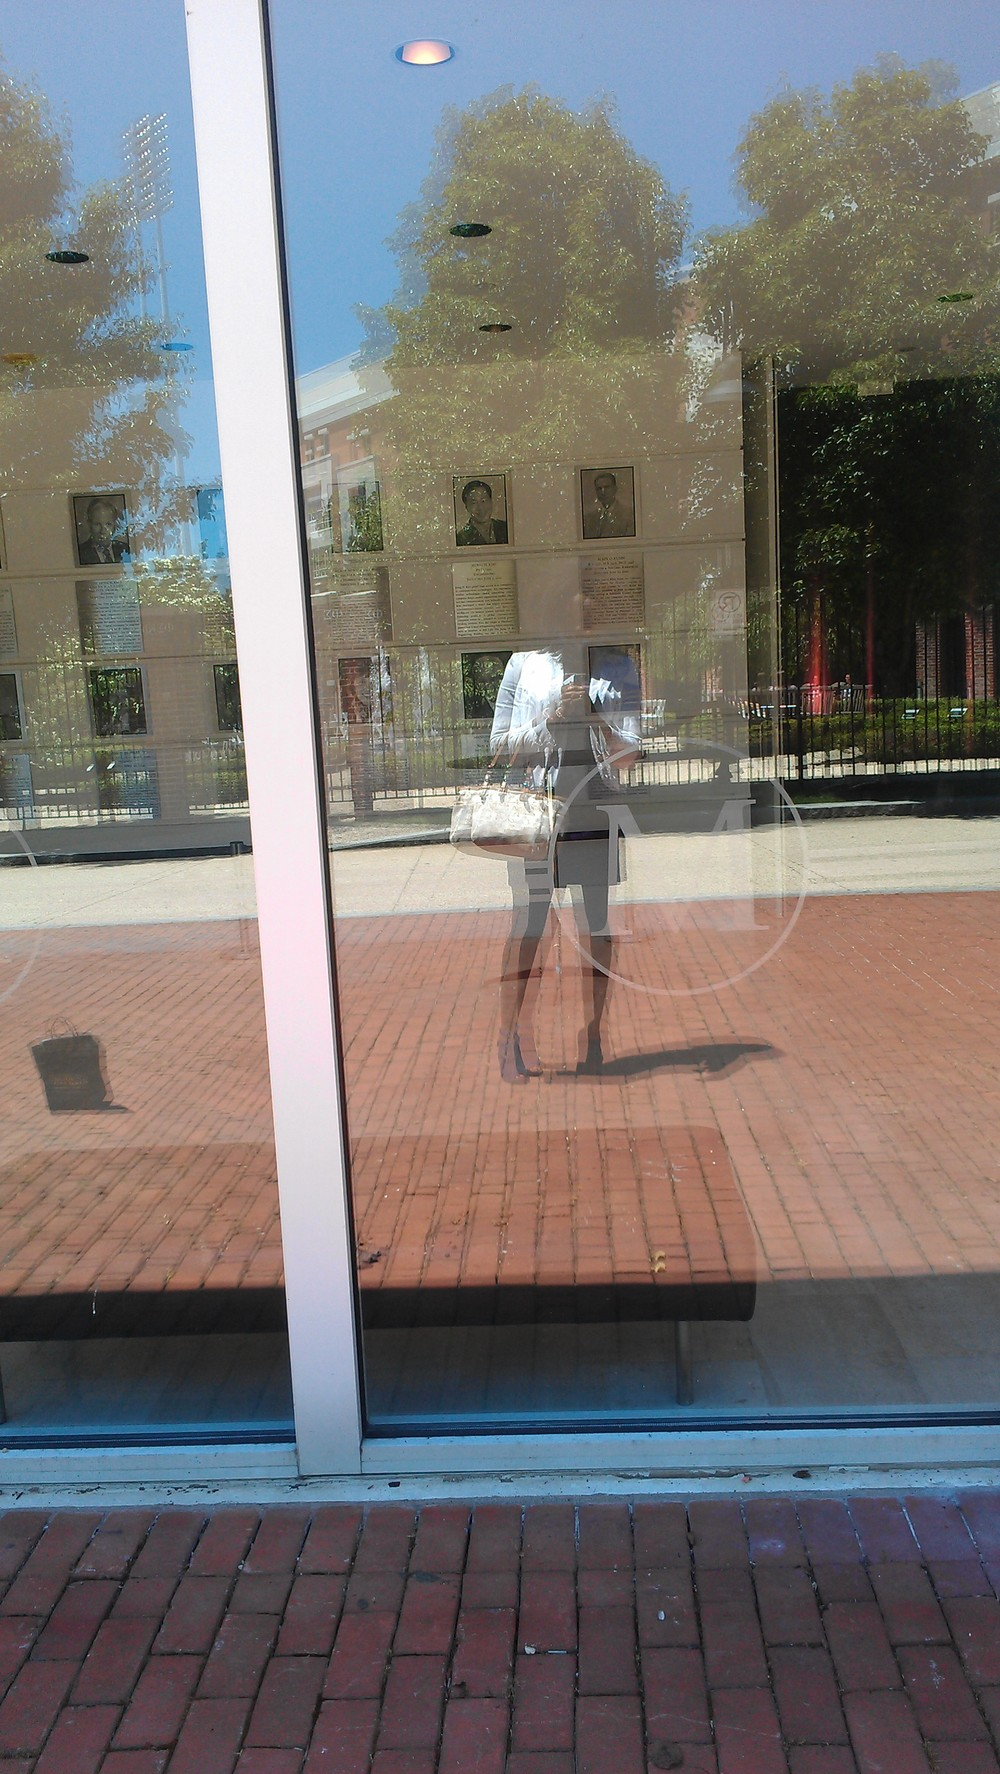 Touchdown on UMD's campus, of course in my signature brand colors (purple dress and white blazer). Here's a cool pic I took in the window